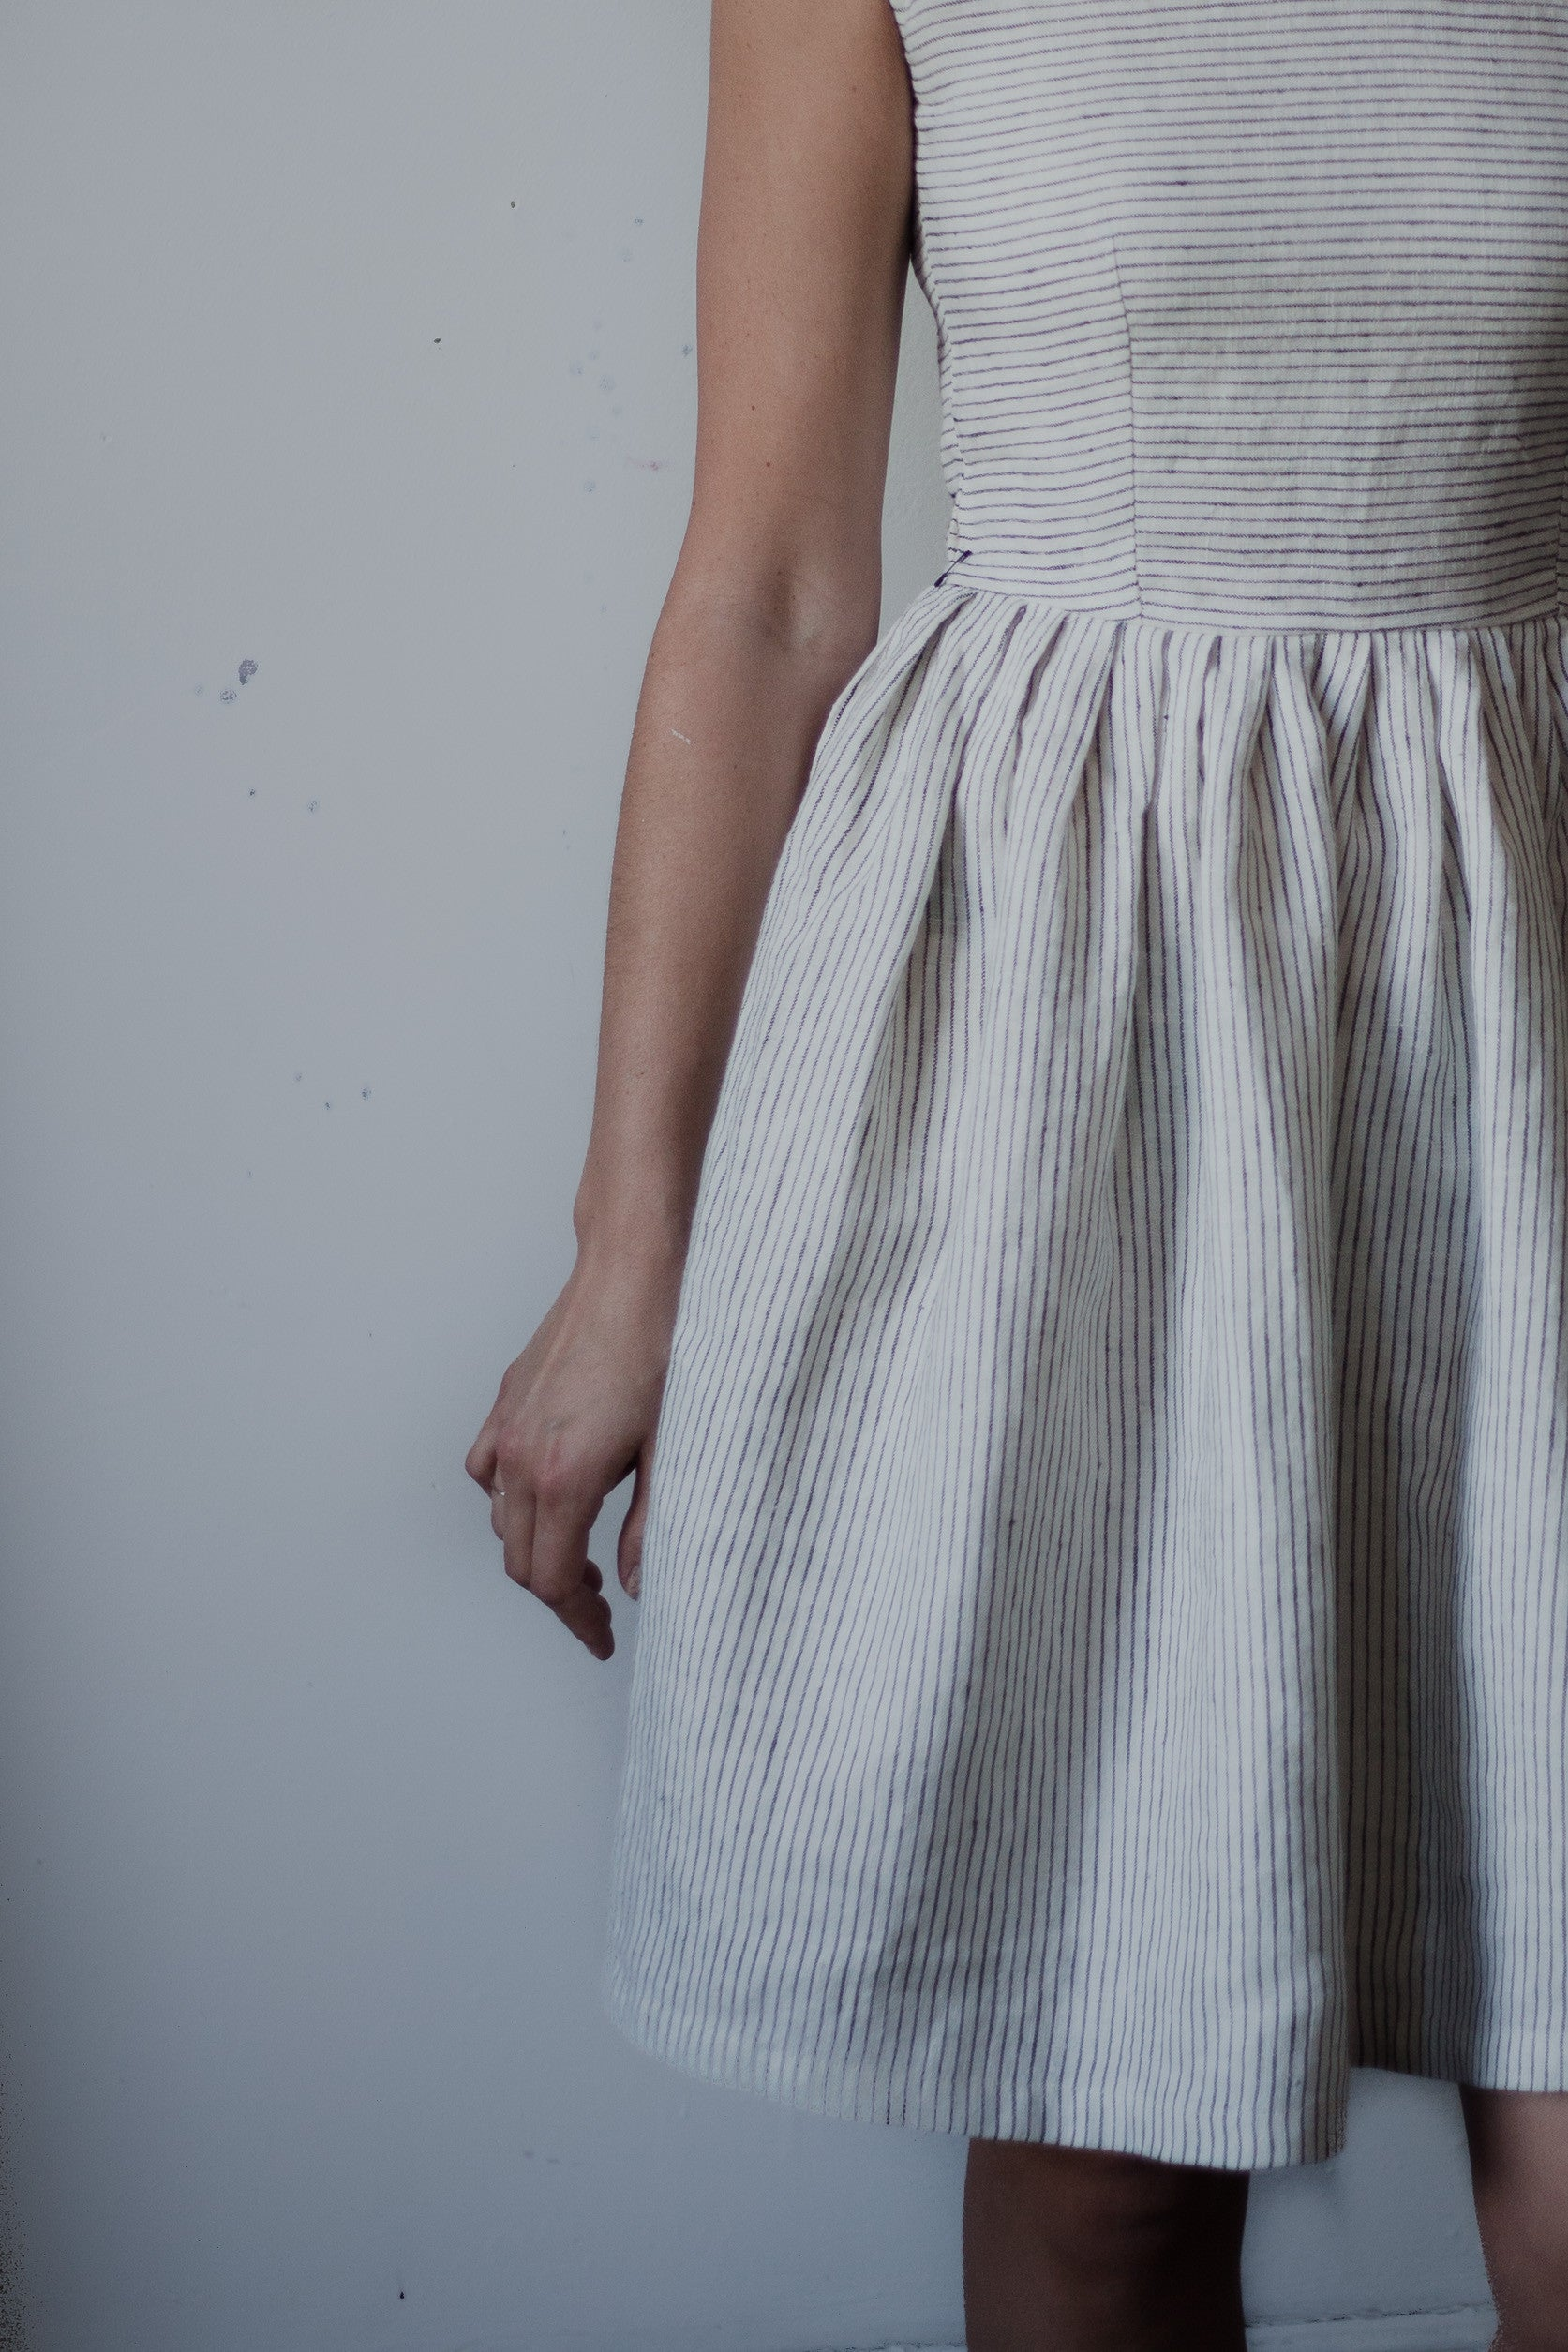 STRIPED DRESS - Fallow Ltd.